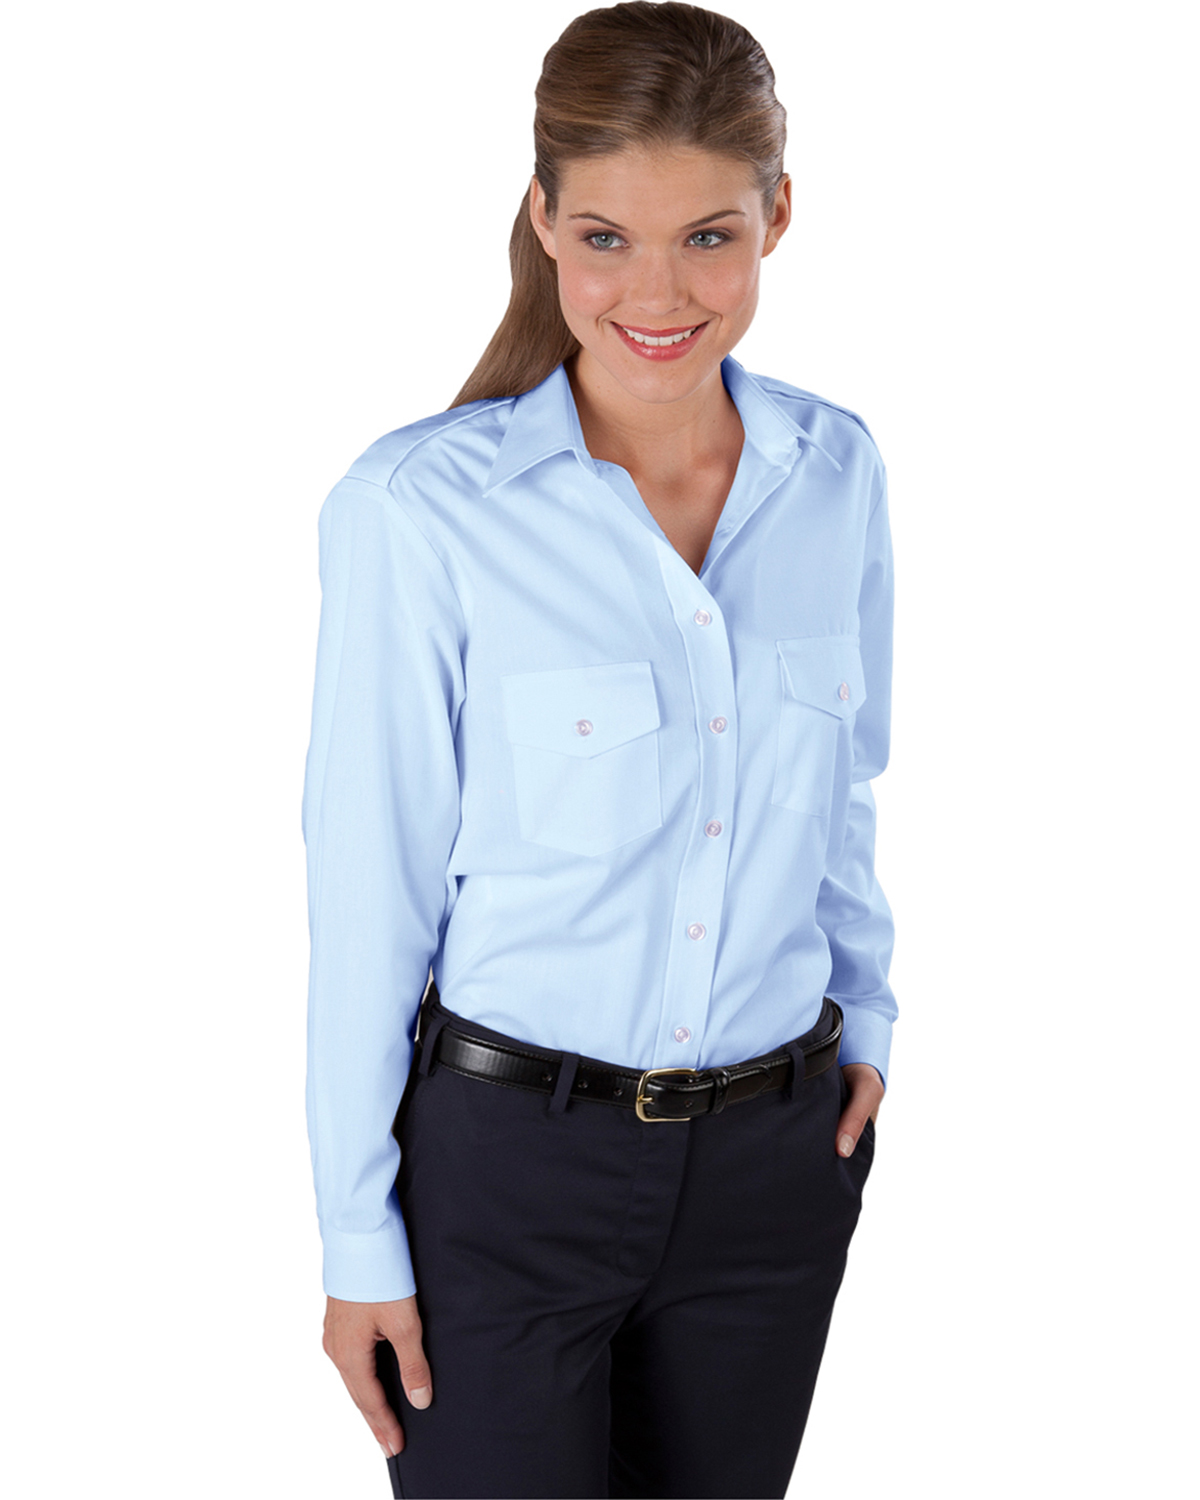 Edwards 5262 Women's Navigator Long-Sleeve Blouse at GotApparel